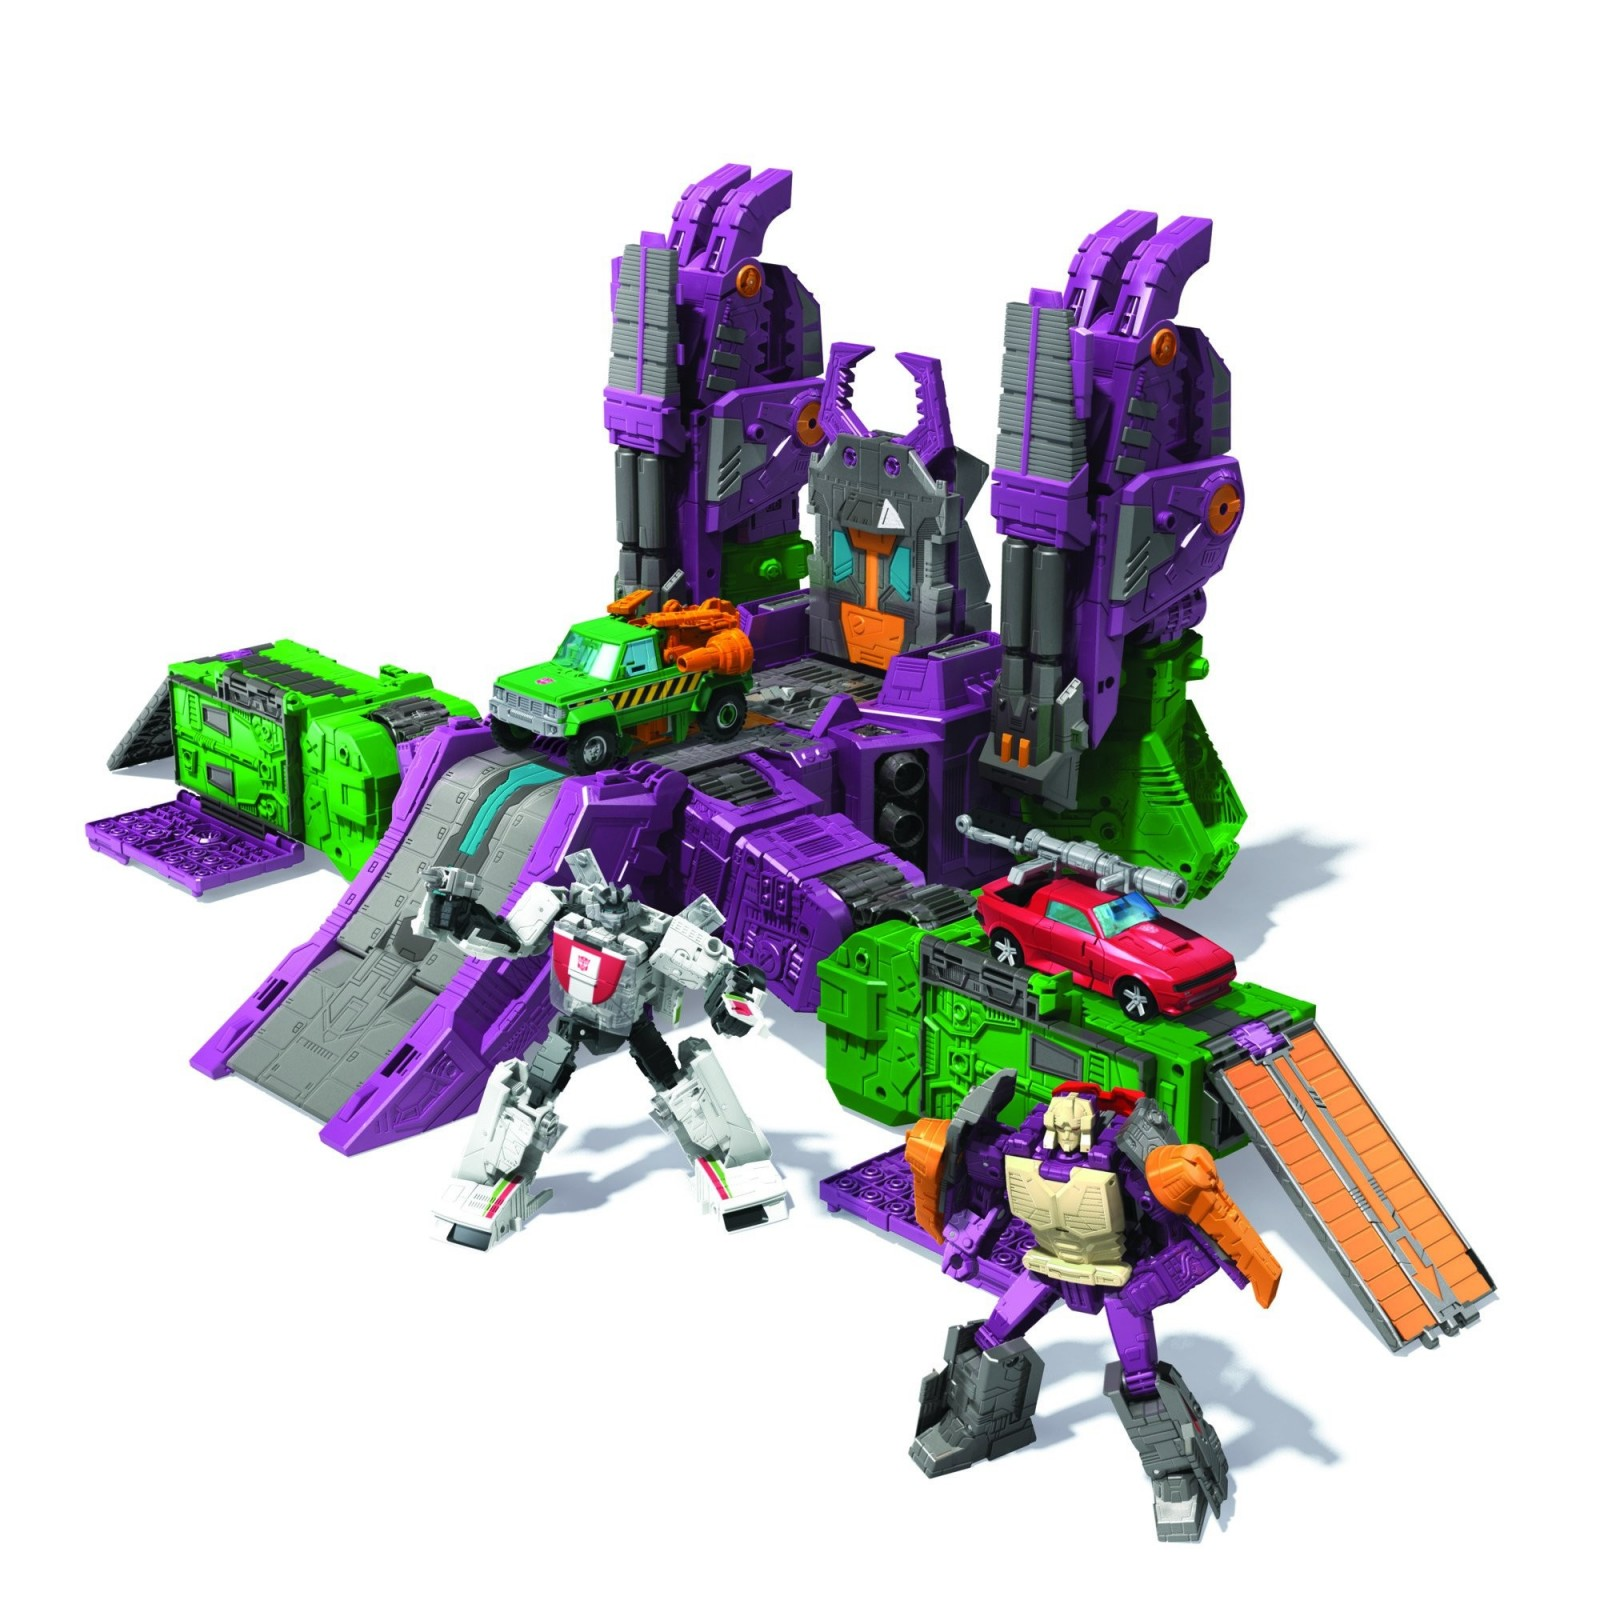 Transformers News: Transformers War for Cybertron Earthrise Official Images - Alicon, Quintesson, Doubledealer, and Mor